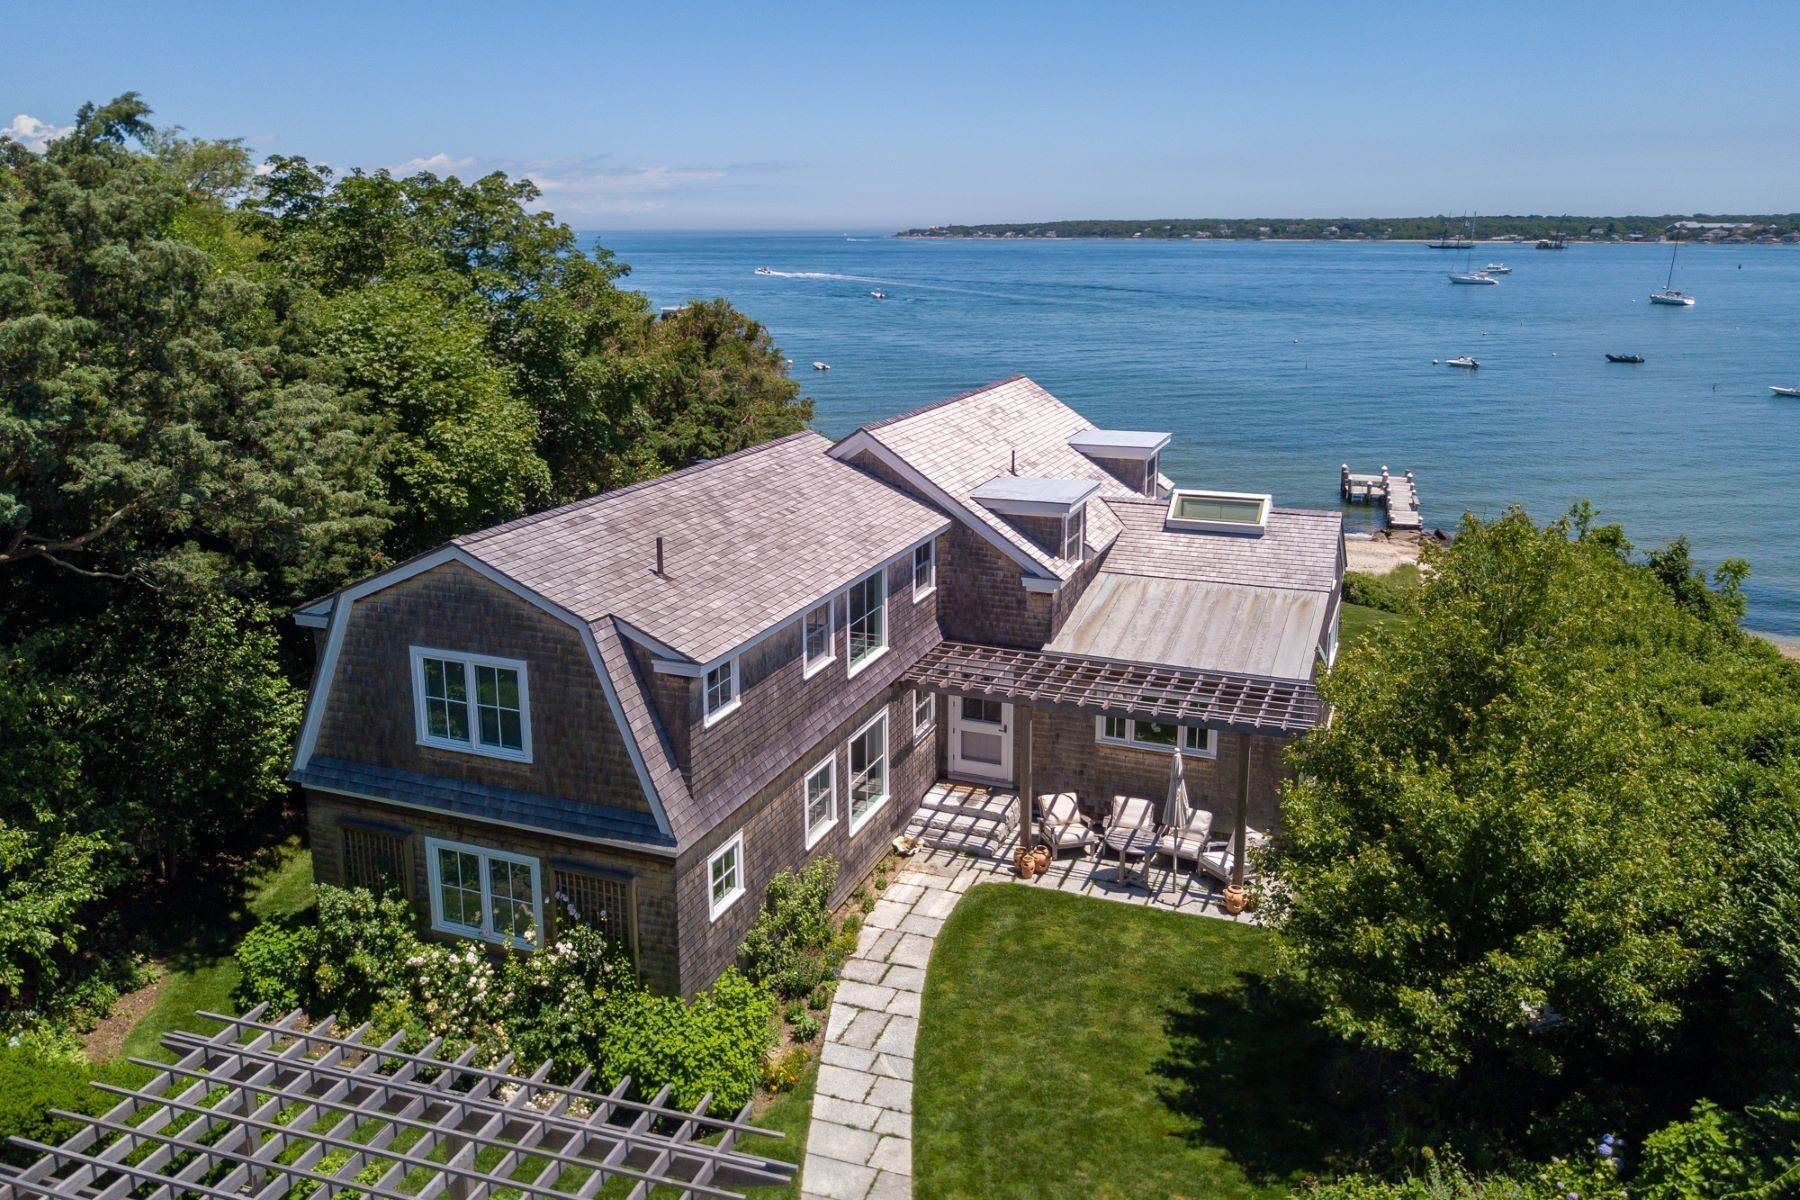 Single Family Homes για την Πώληση στο Harborfront Vineyard Haven home with private dock and sandy beach 88 Hatch Road, Vineyard Haven, Μασαχουσετη 02568 Ηνωμένες Πολιτείες